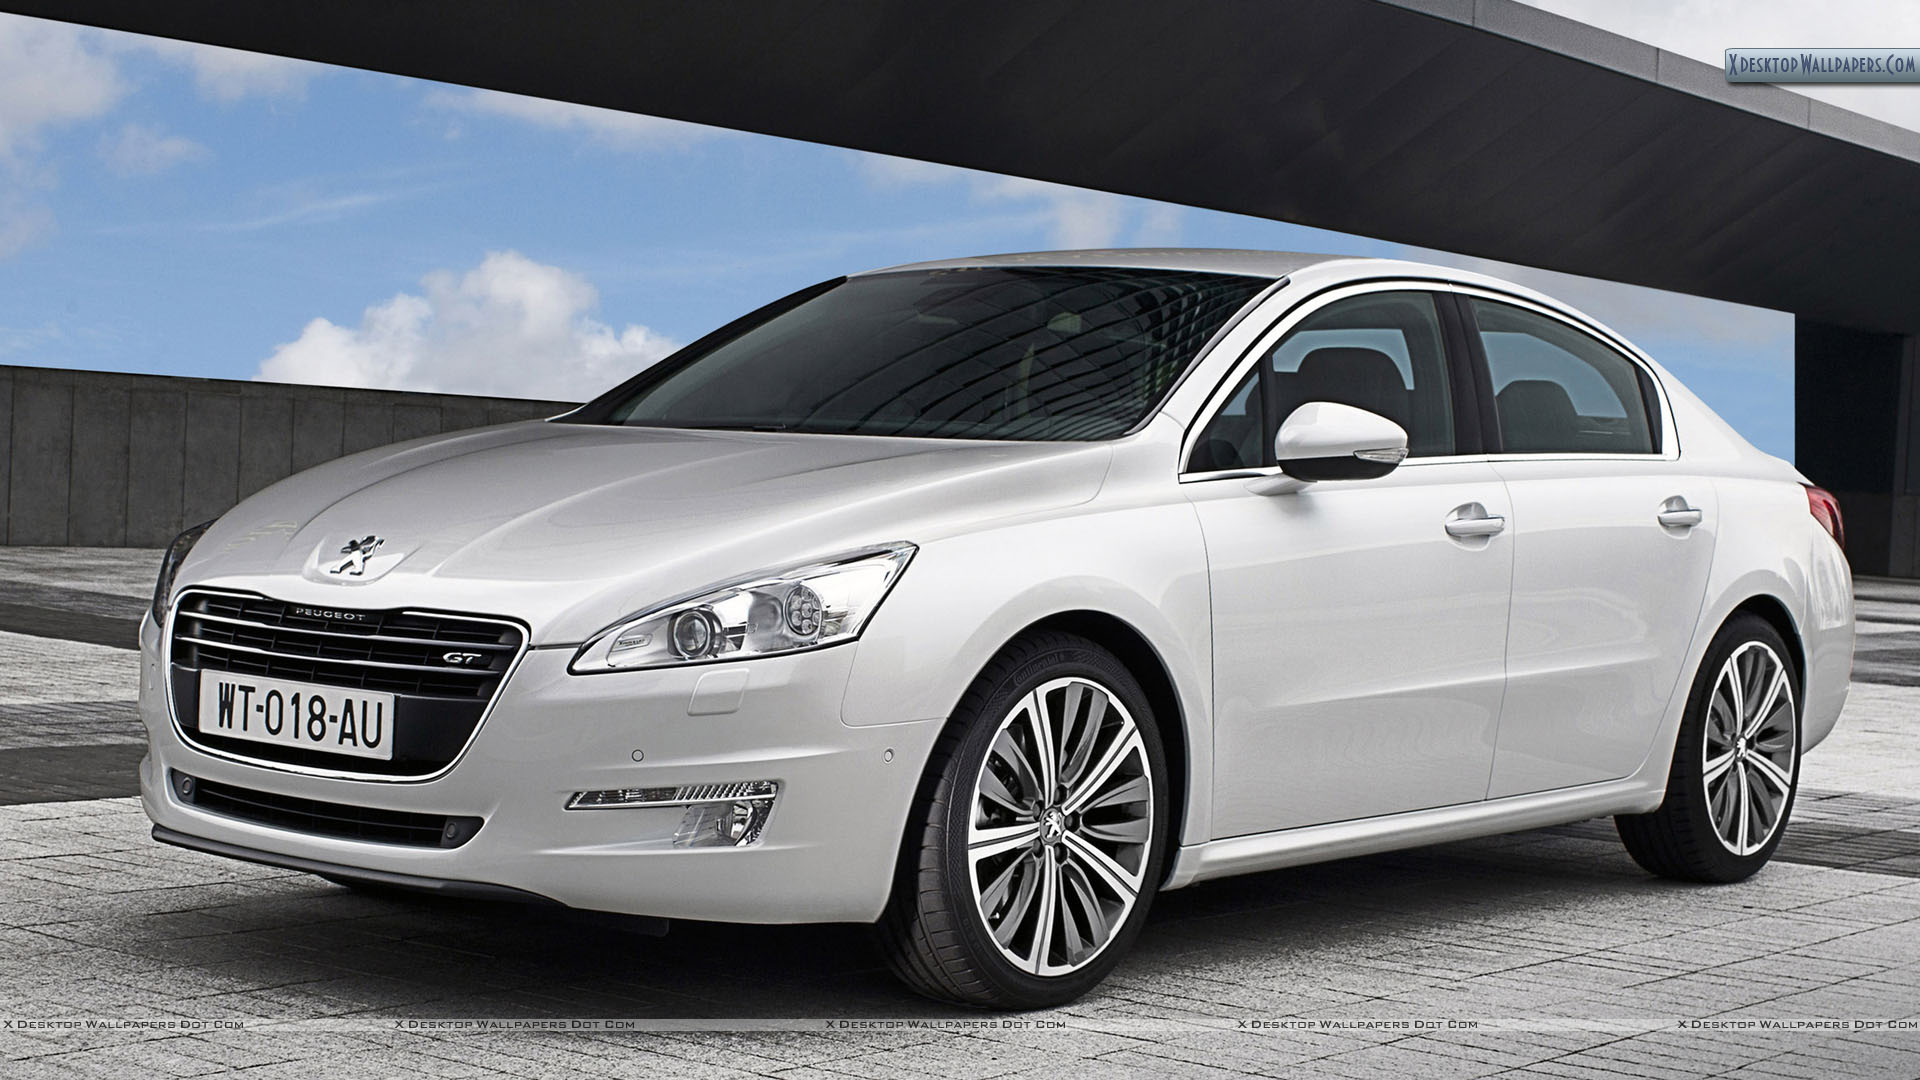 Peugeot 508 saloon white color front side wallpaper for Photo peugeot 508